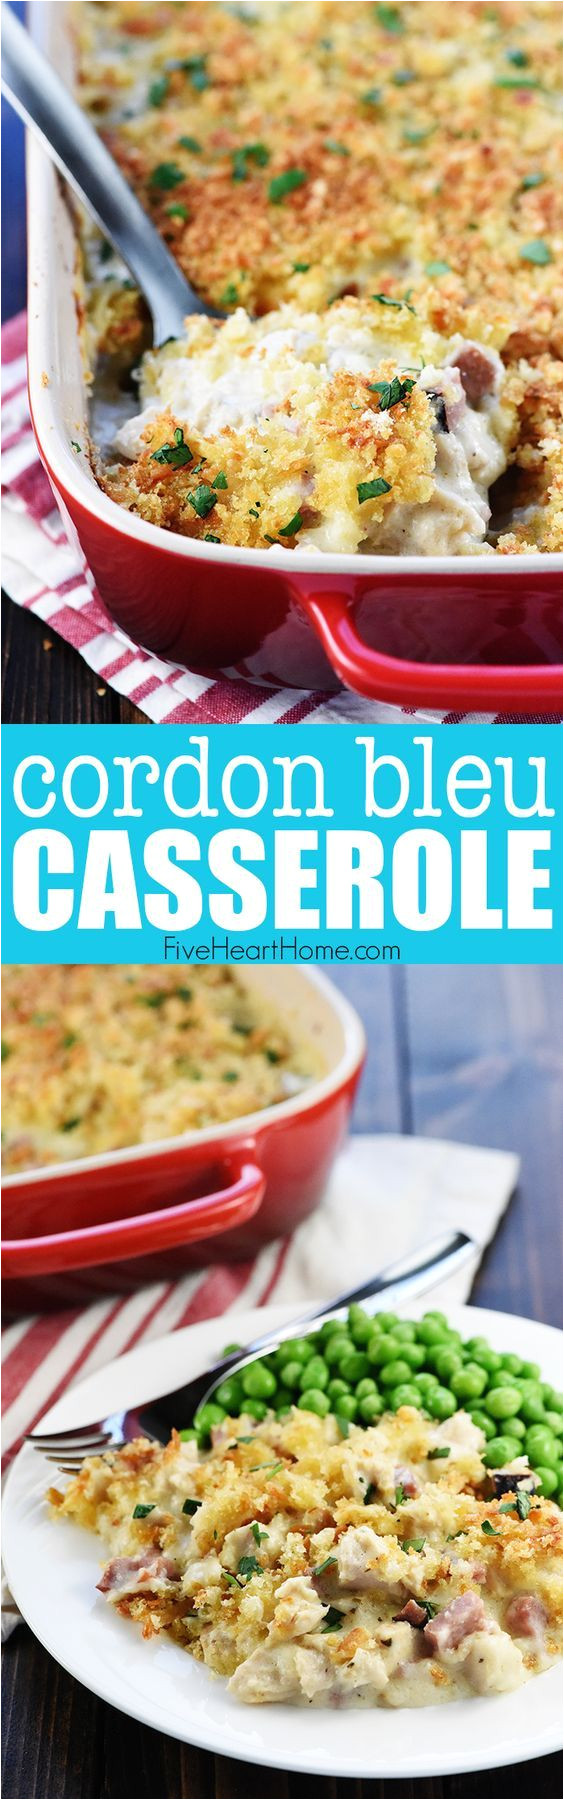 California Blend Vegetable Casserole Swiss Cheese 734 Best Recipes Savory Main Dishes Images On Pinterest